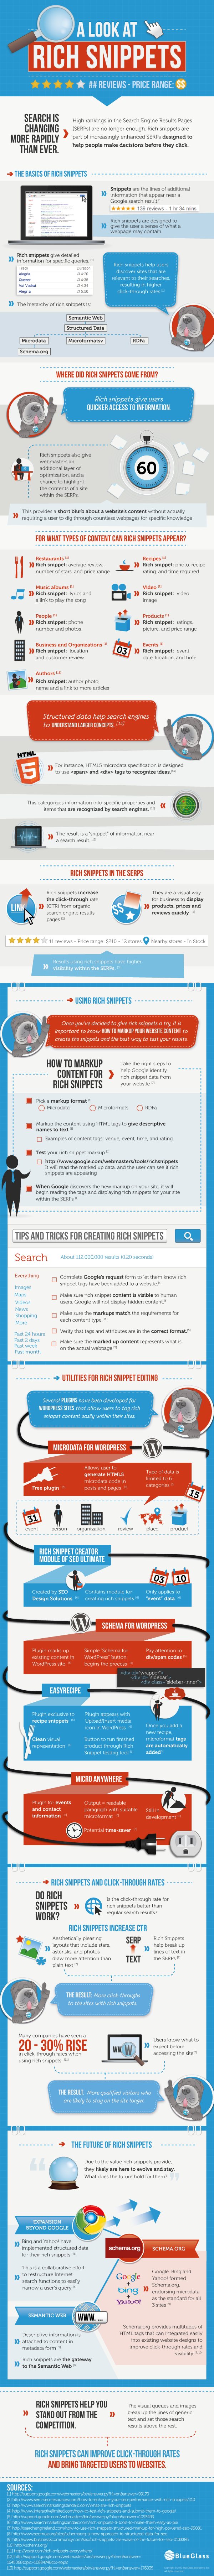 Quelle: https://moz.com/blog/a-visual-guide-to-rich-snippets